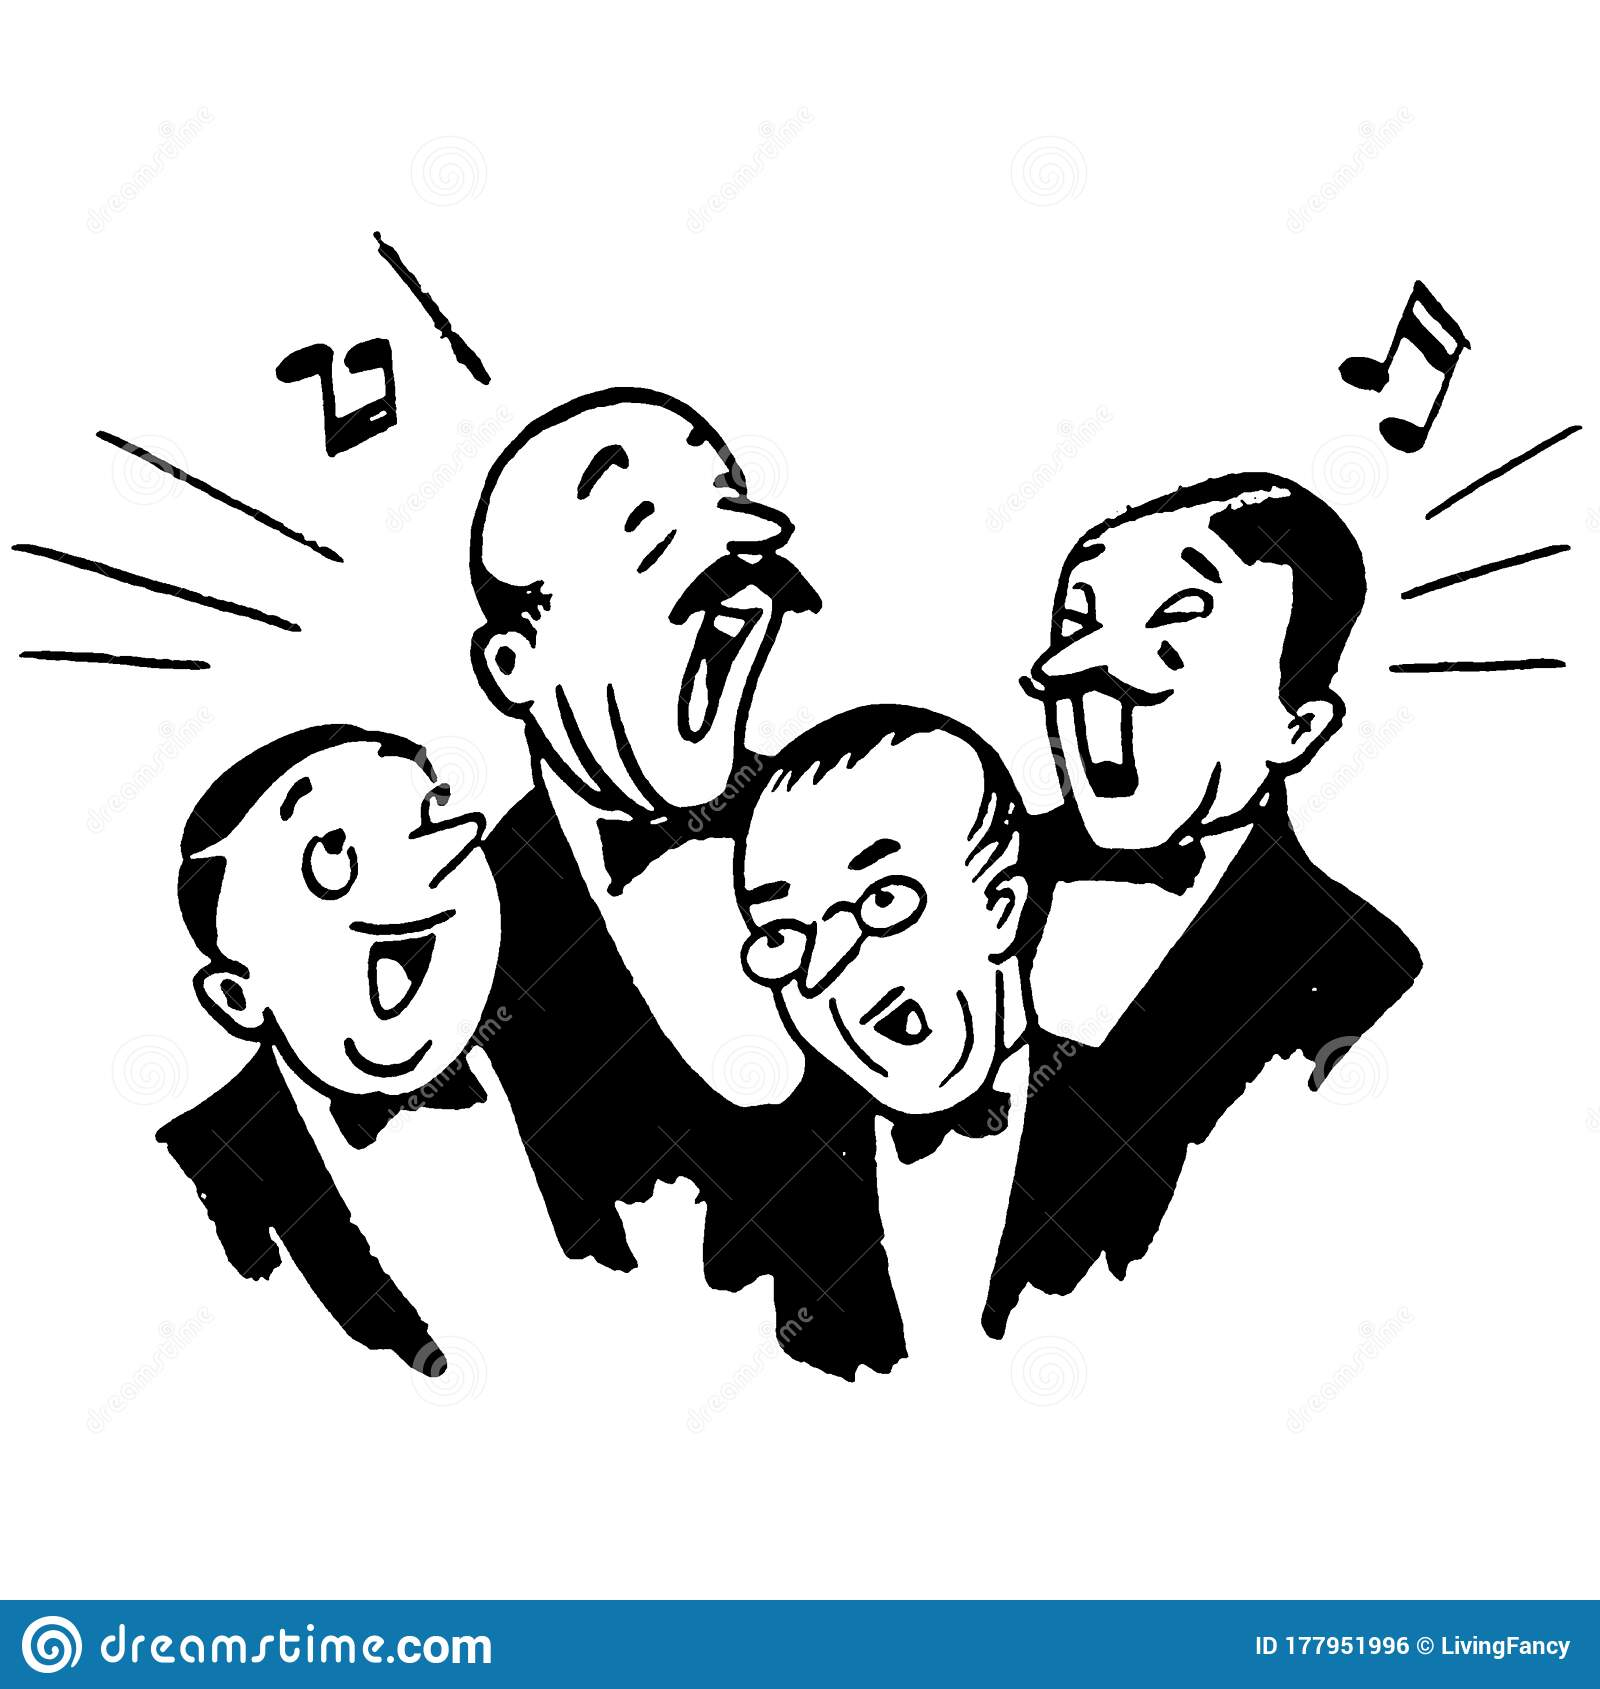 ᐈ Singer stock pictures, Royalty Free singing cliparts   download on  Depositphotos®